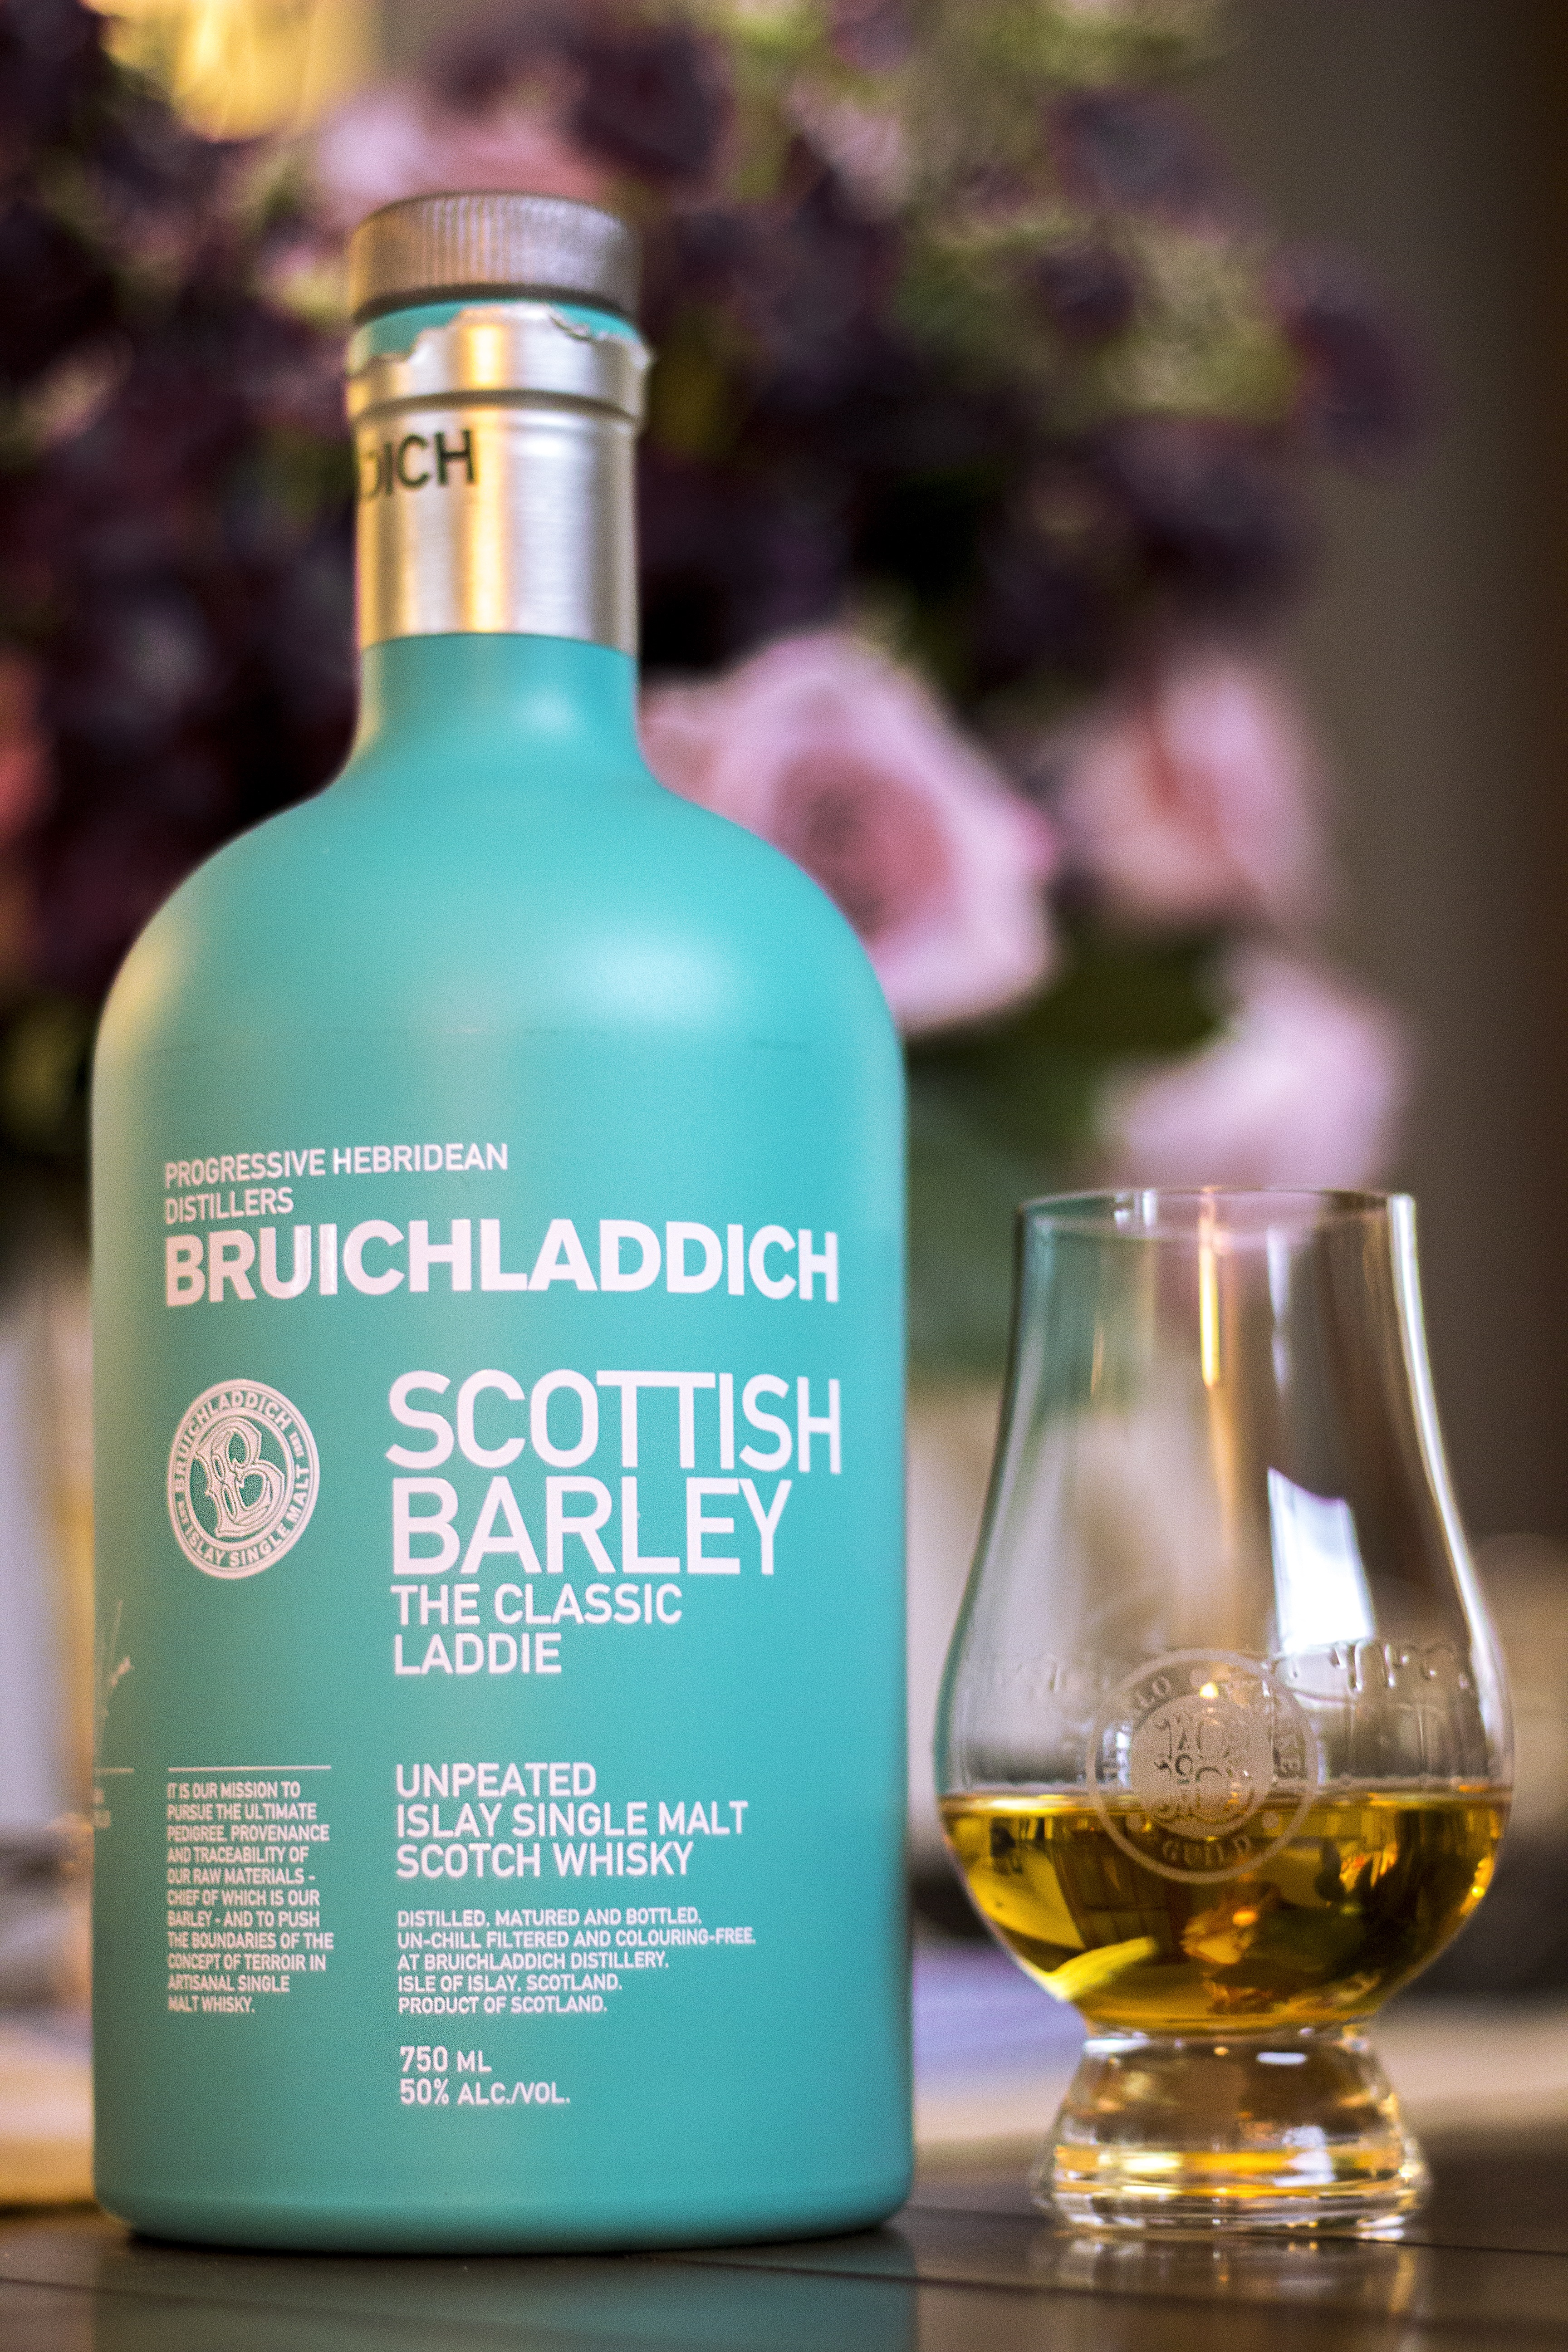 The islay whisky bottle of Bruichladdich Classic laddie